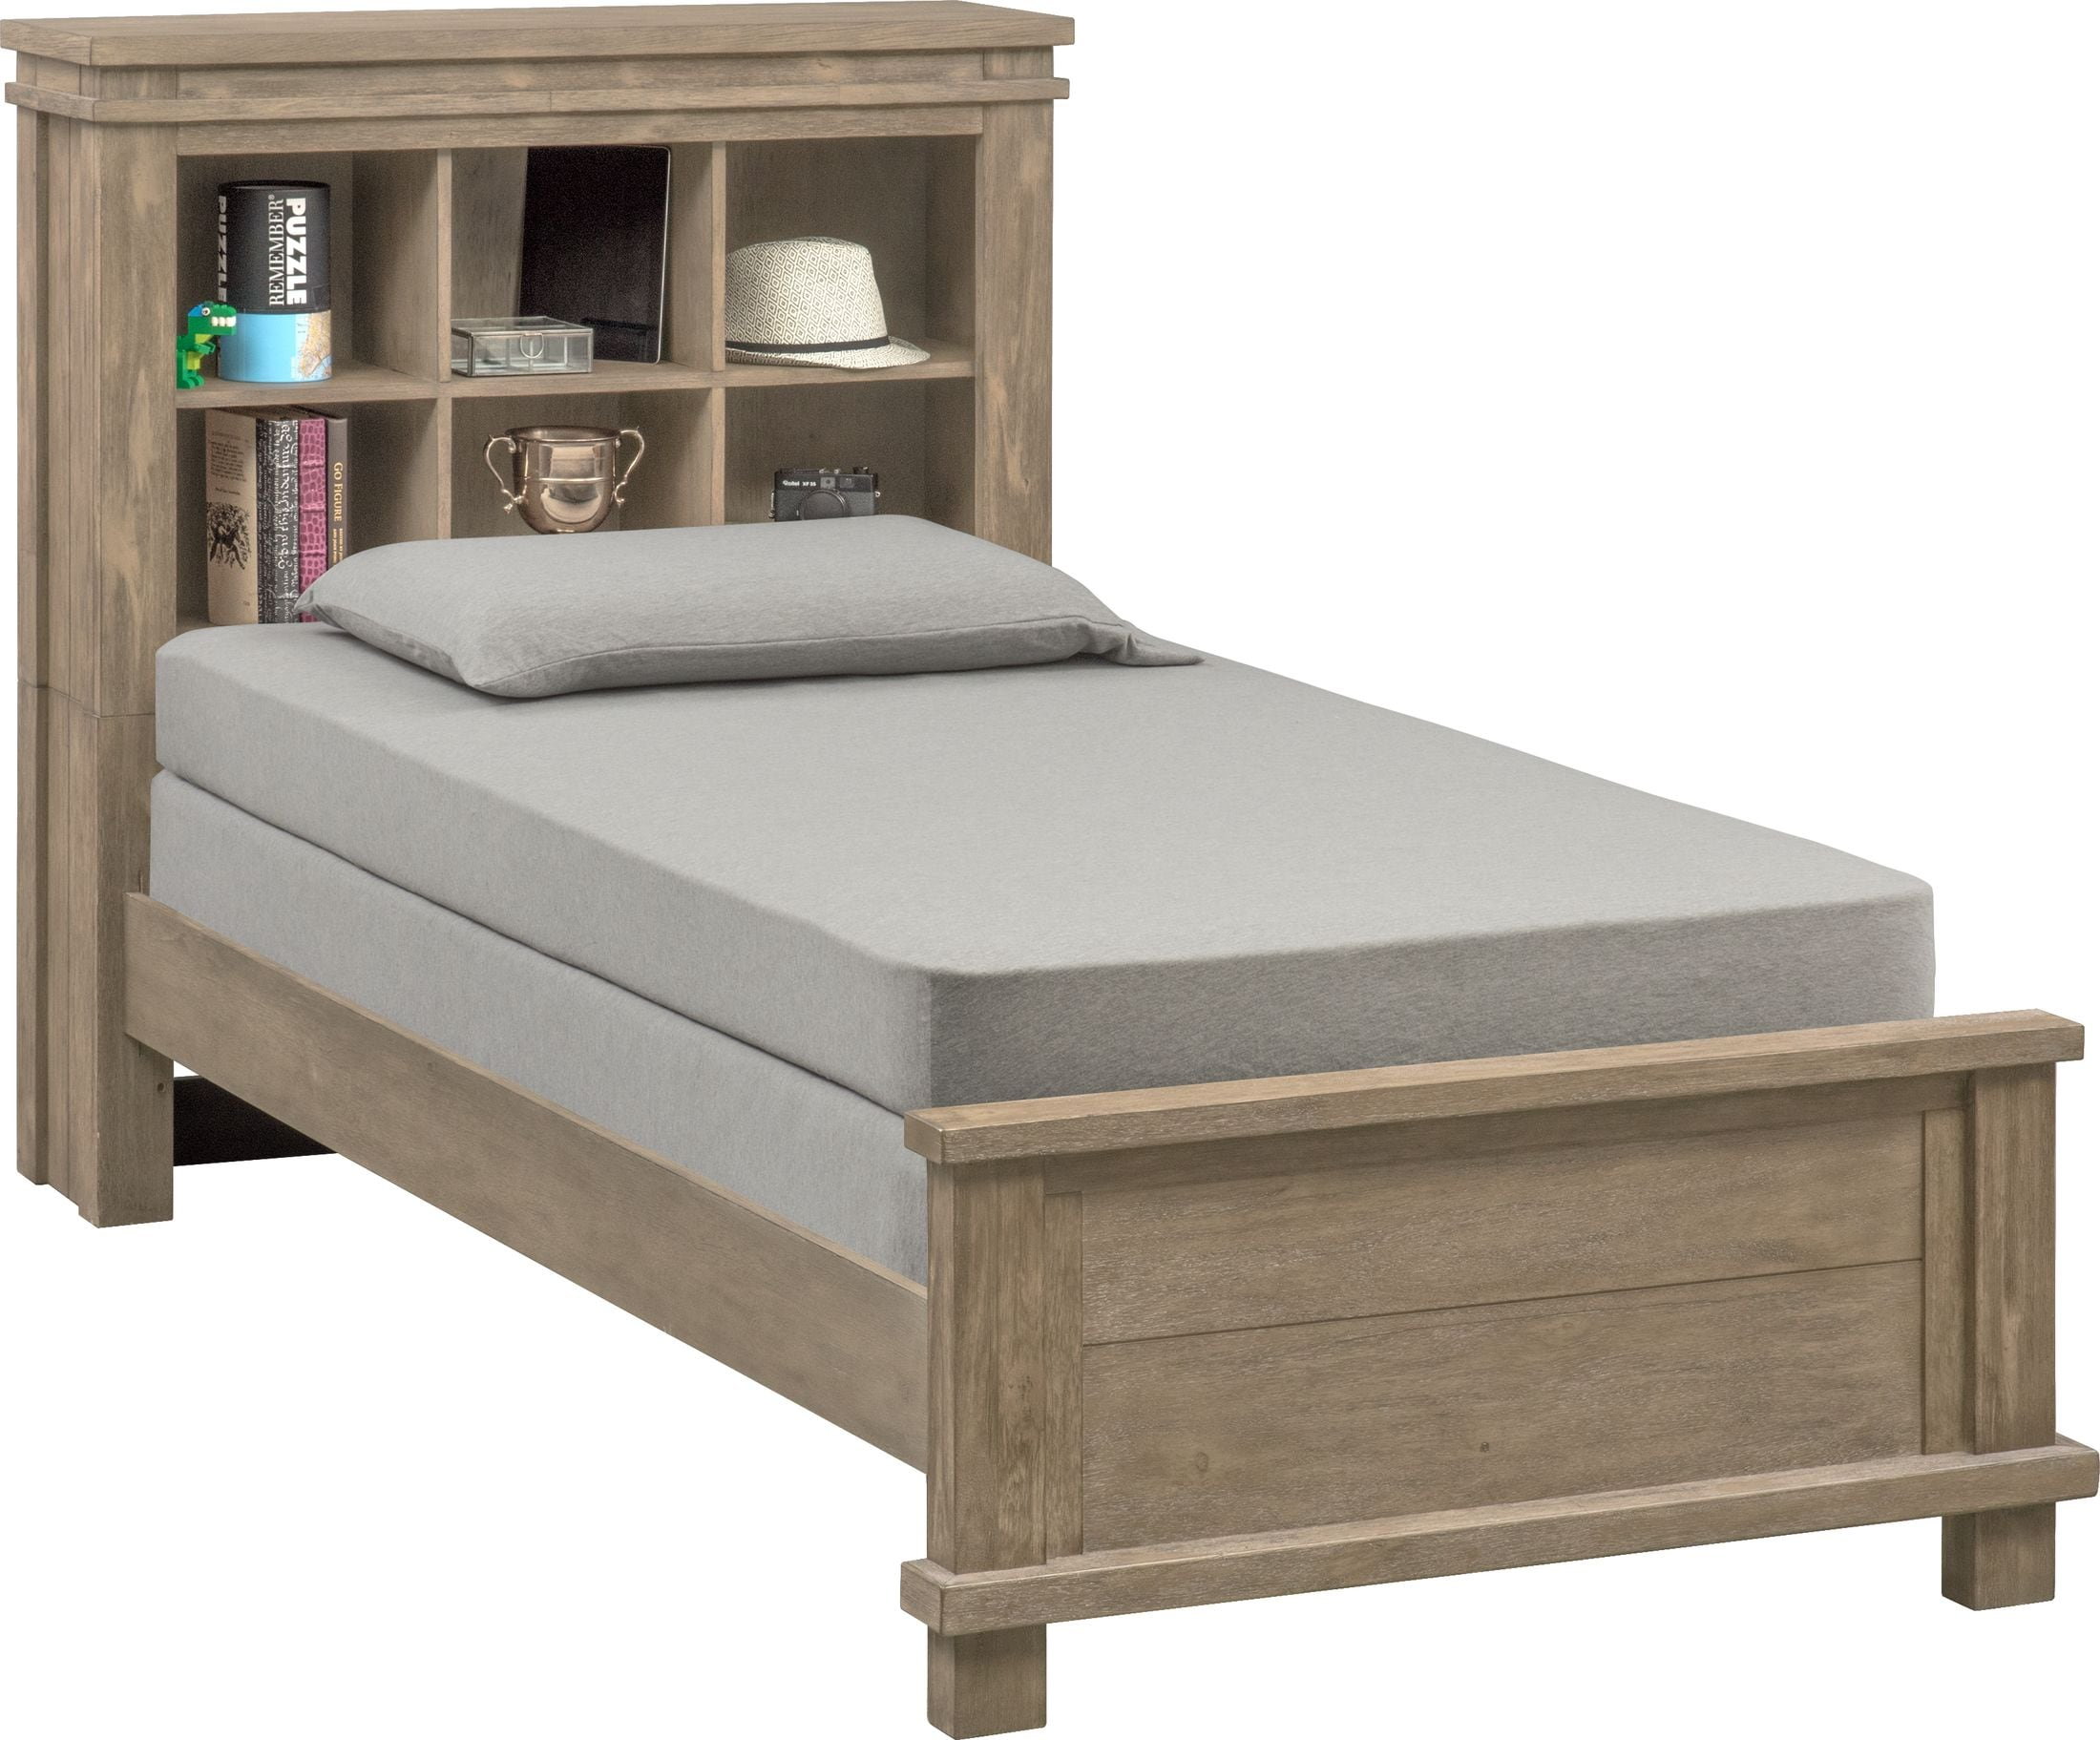 Bedroom Furniture - Tribeca Youth Bookcase Bed